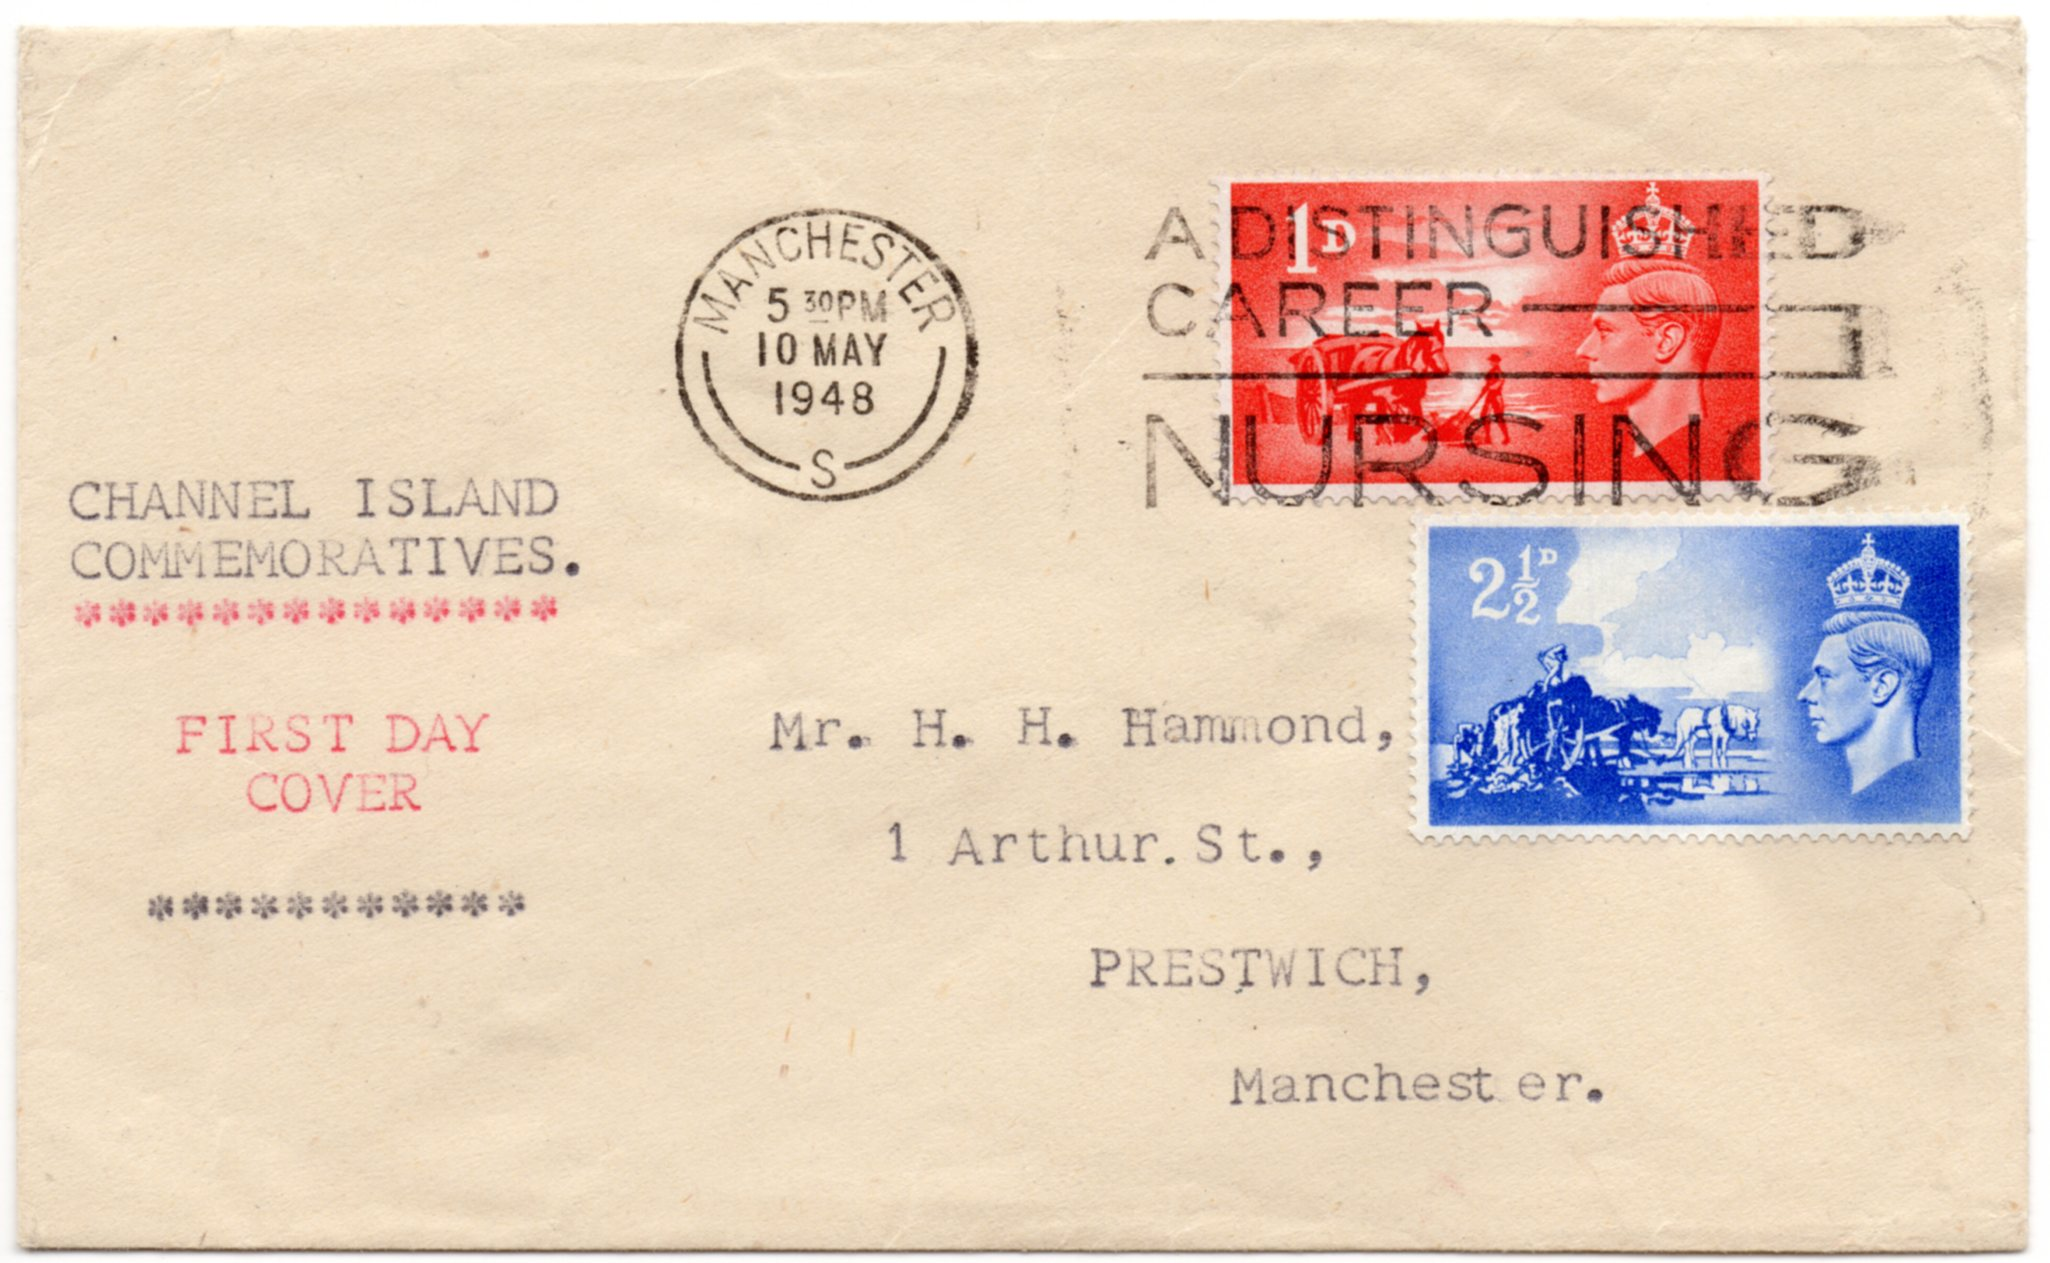 1948 CHANNEL ISLANDS TYPED FIRST DAY COVER TO MANCHESTER